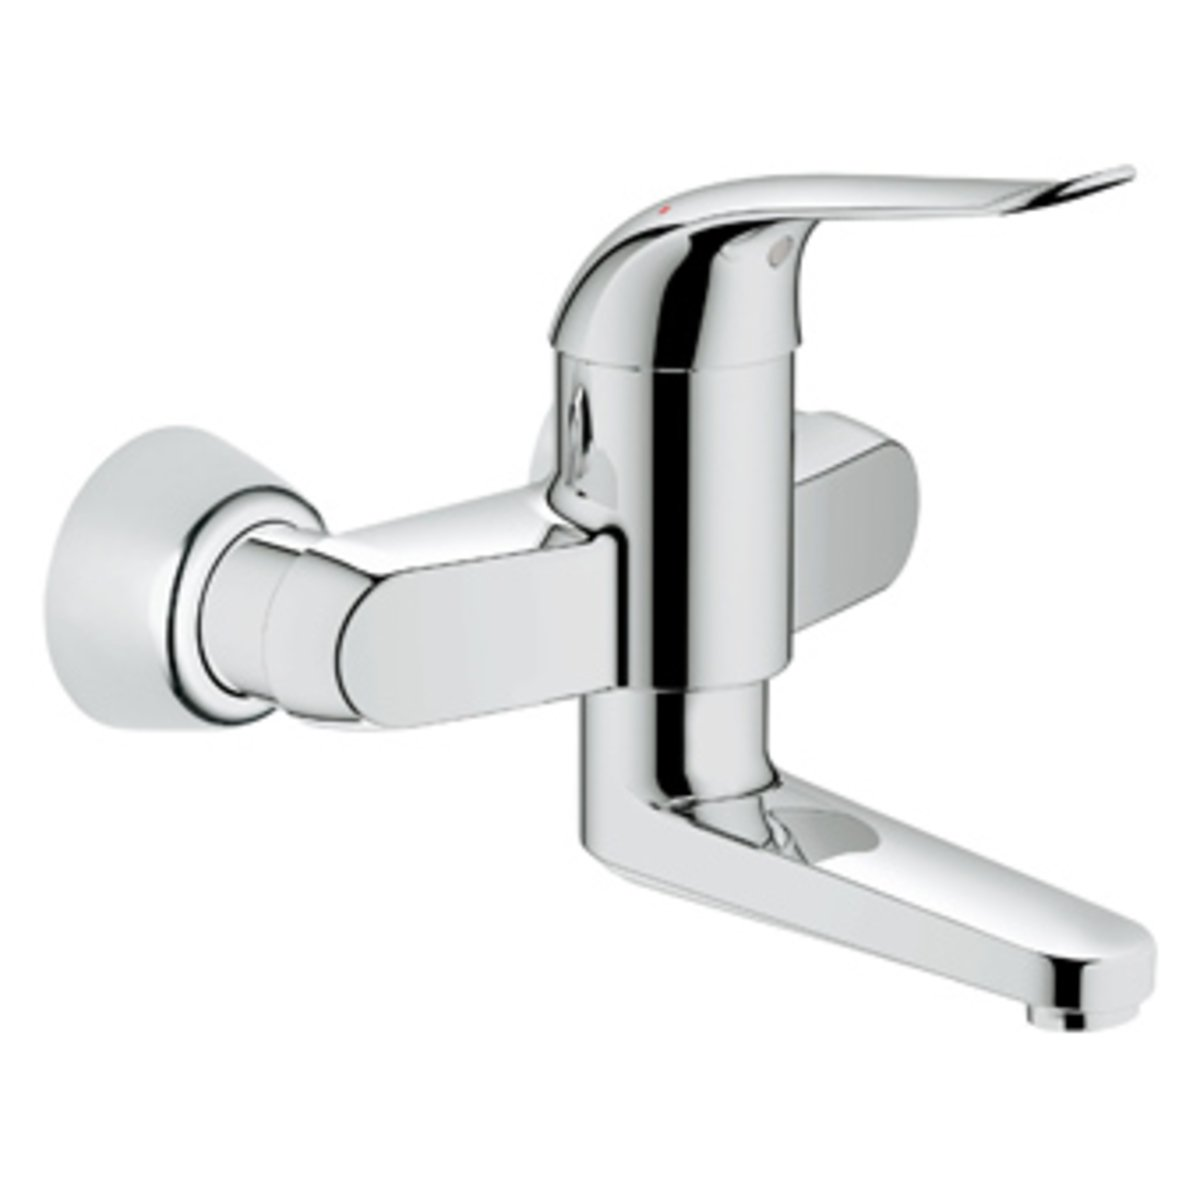 Grohe euroeco robinet mural avec connexions entraxe 15cm for Robinet mural grohe